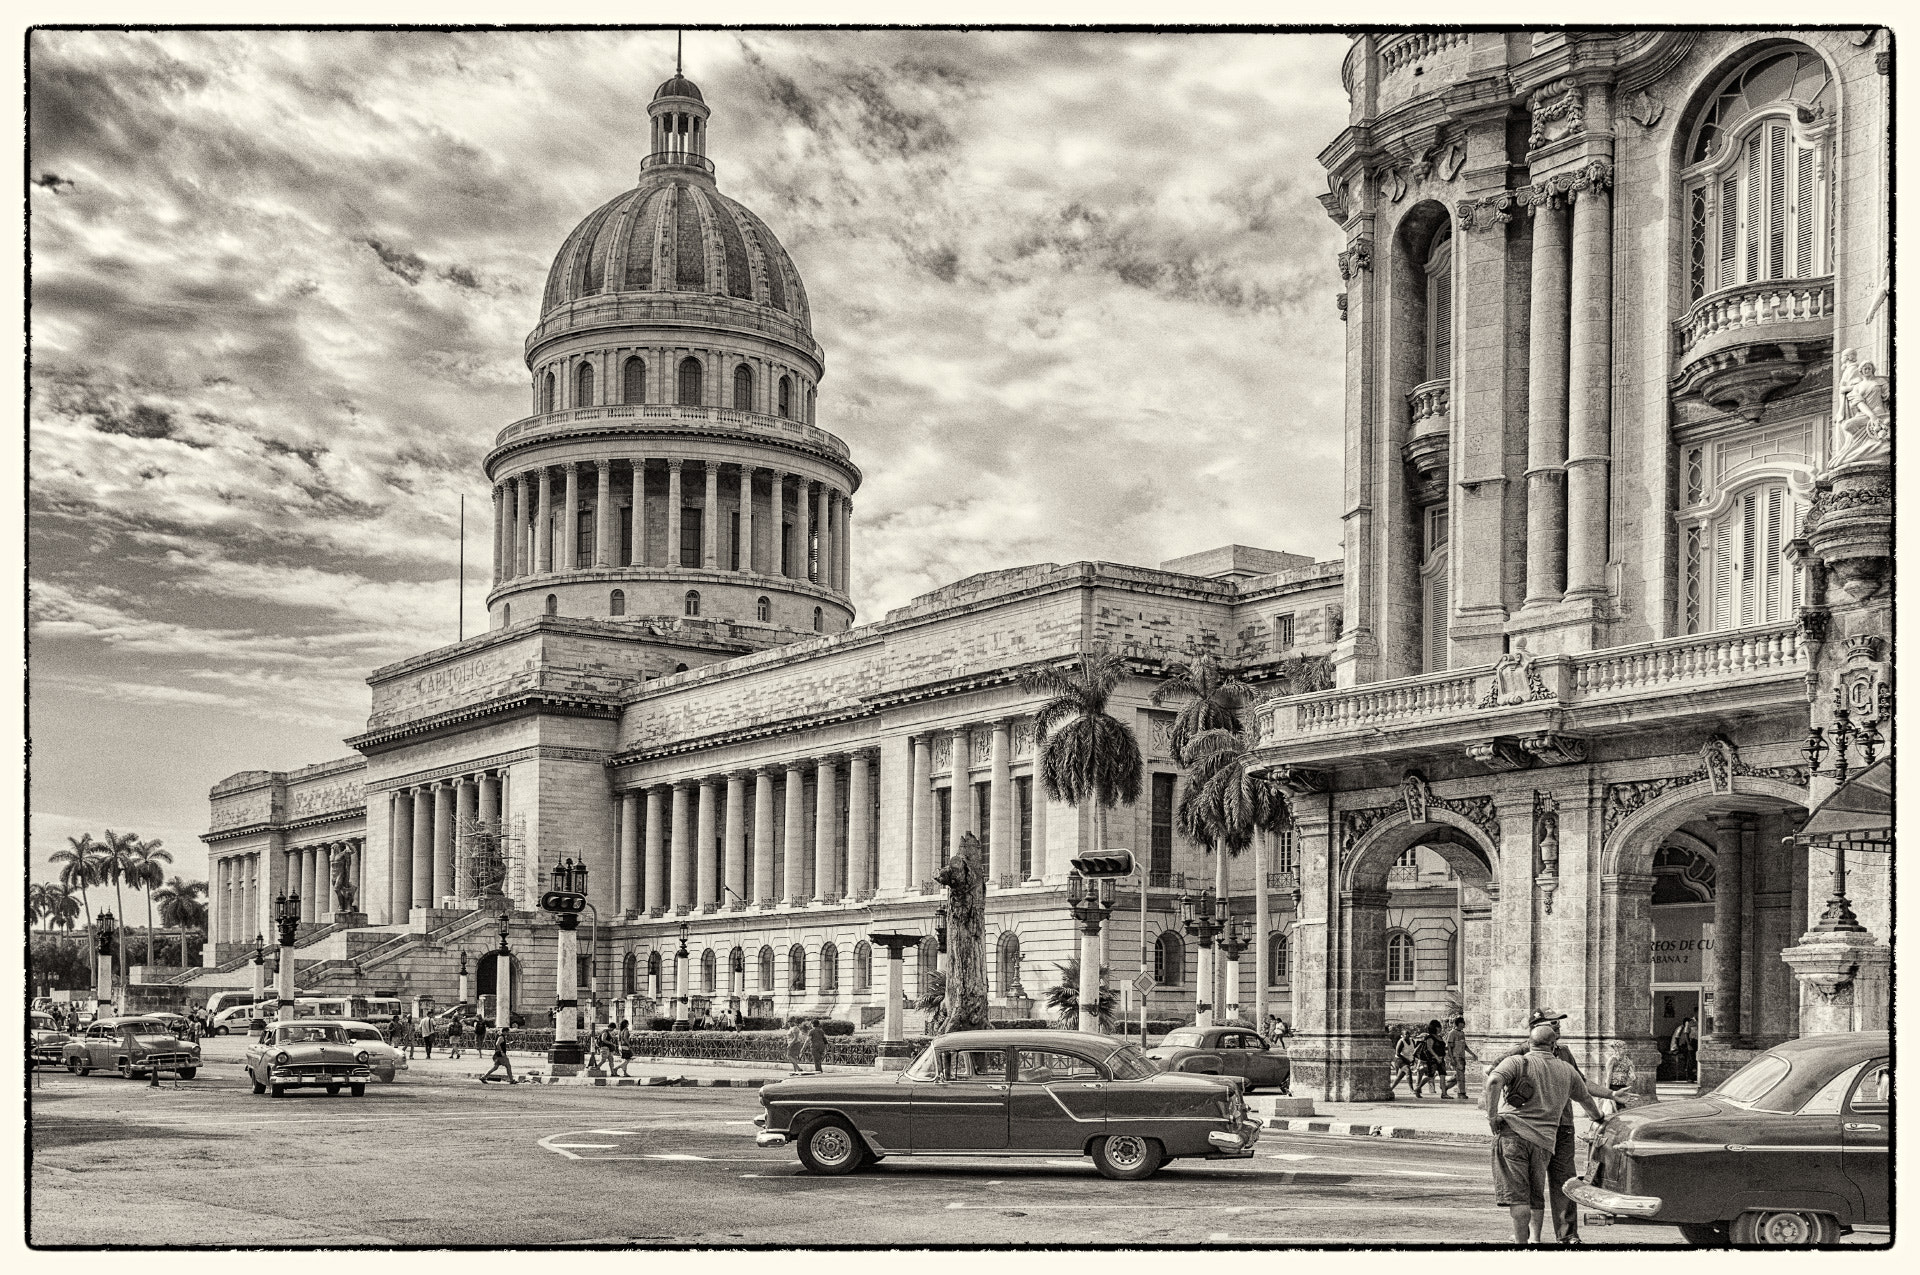 Photograph Habana by Konstantyn Olnoff on 500px